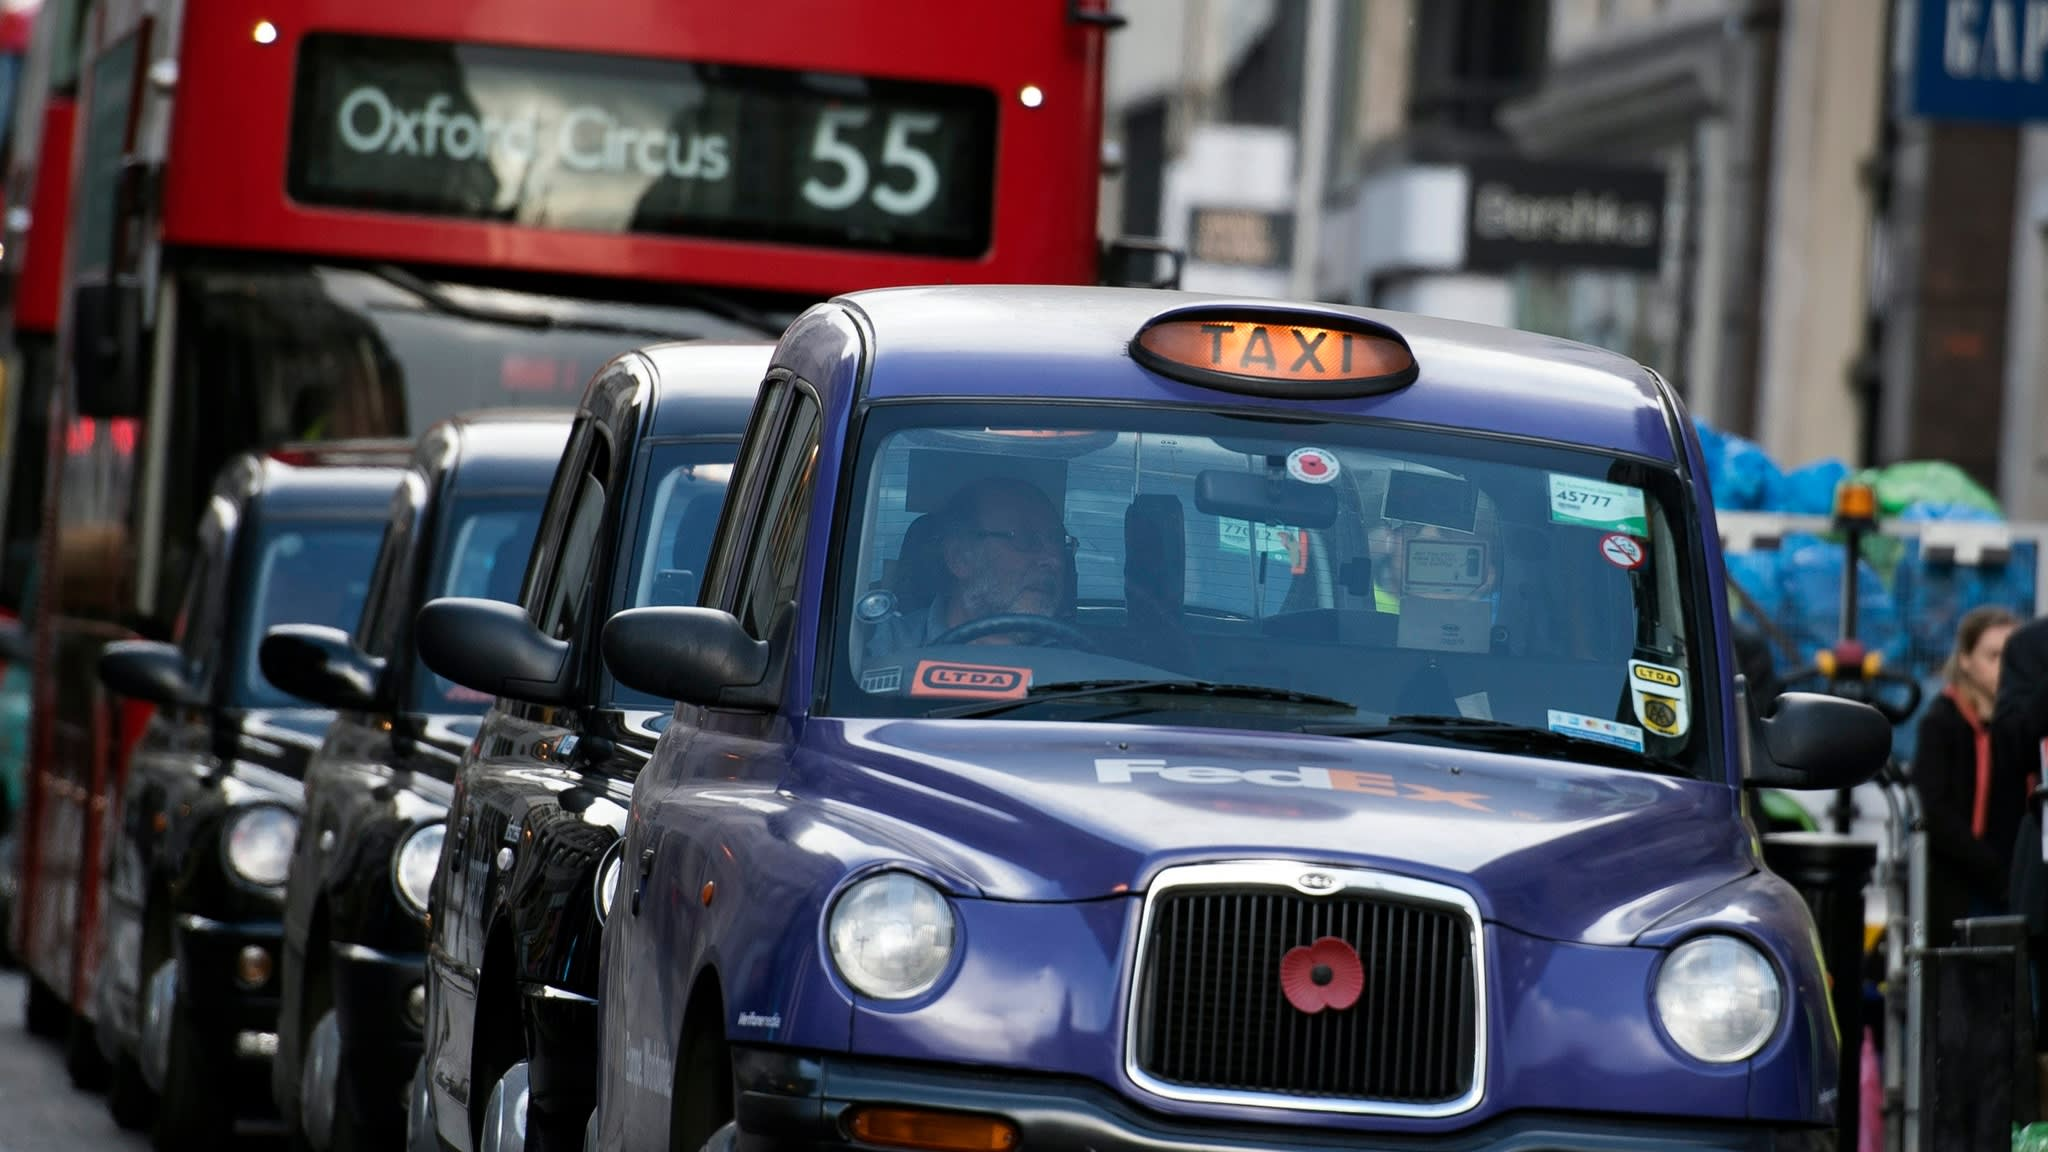 Uber faces tough new regulations in London